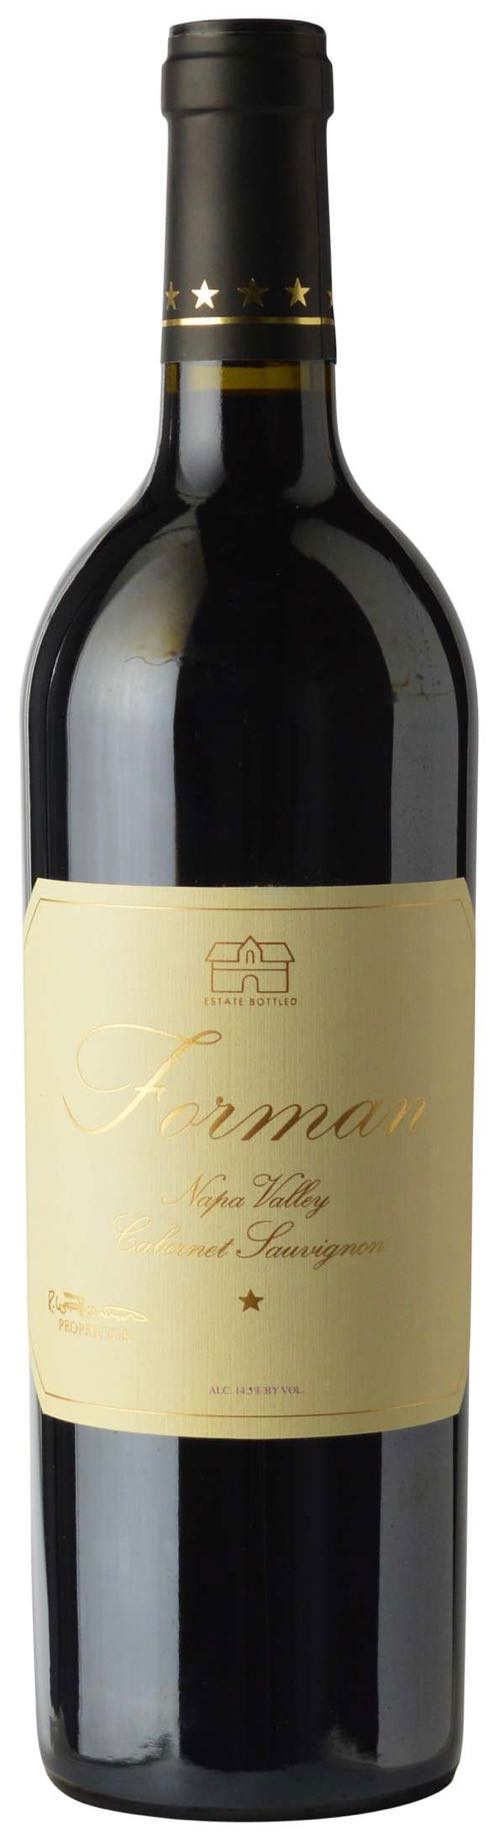 Forman Cabernet Sauvignon Napa Valley 2014,  (VN95+) from The BPW - Merchants of rare and fine wines.